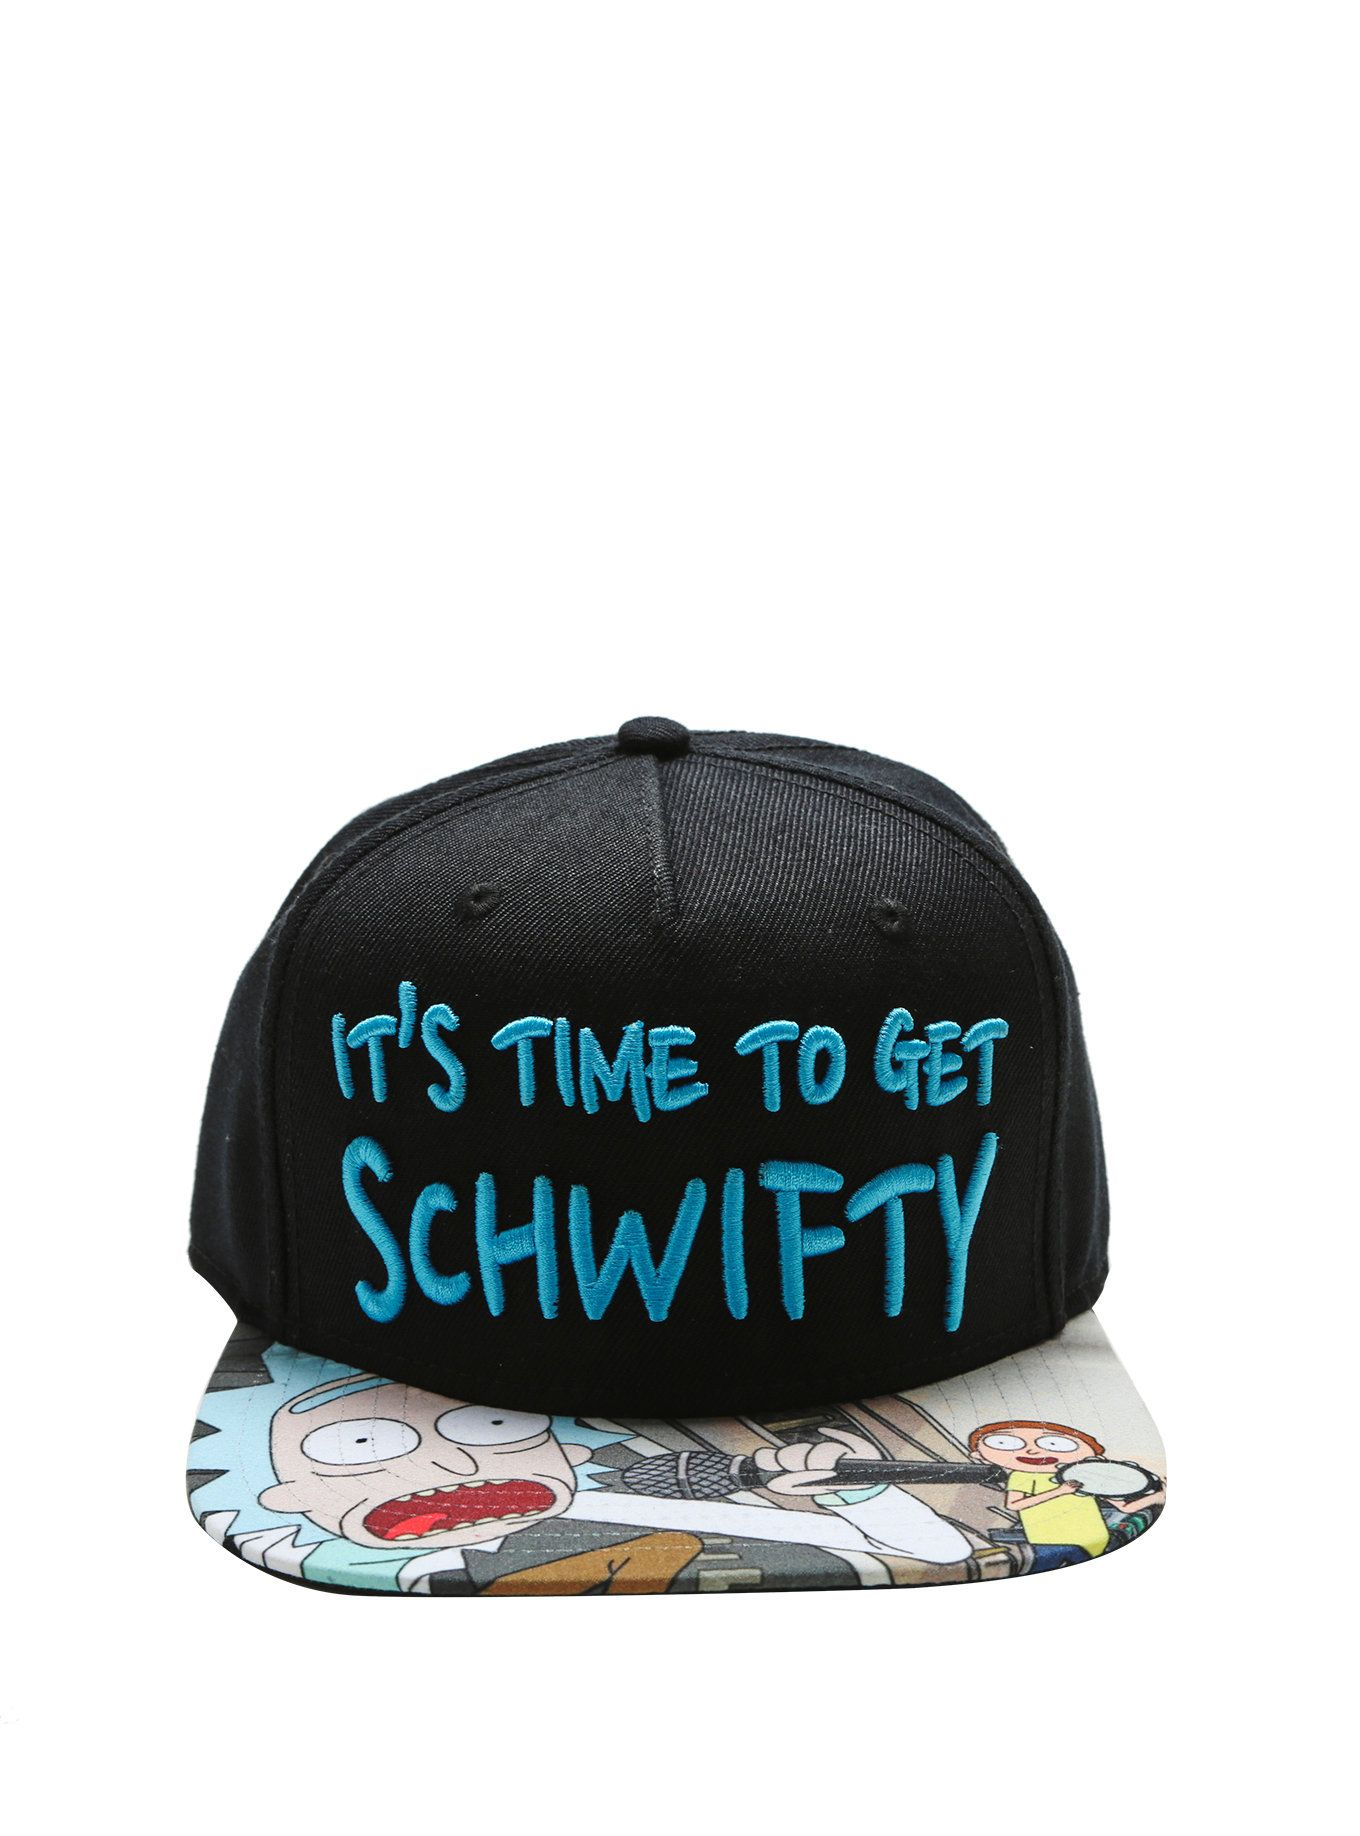 Official Licensed Adult Swim Rick and Morty Wubba Lubba Dub Dub Snapback Hat Accessories Clothes, Shoes & Accessories